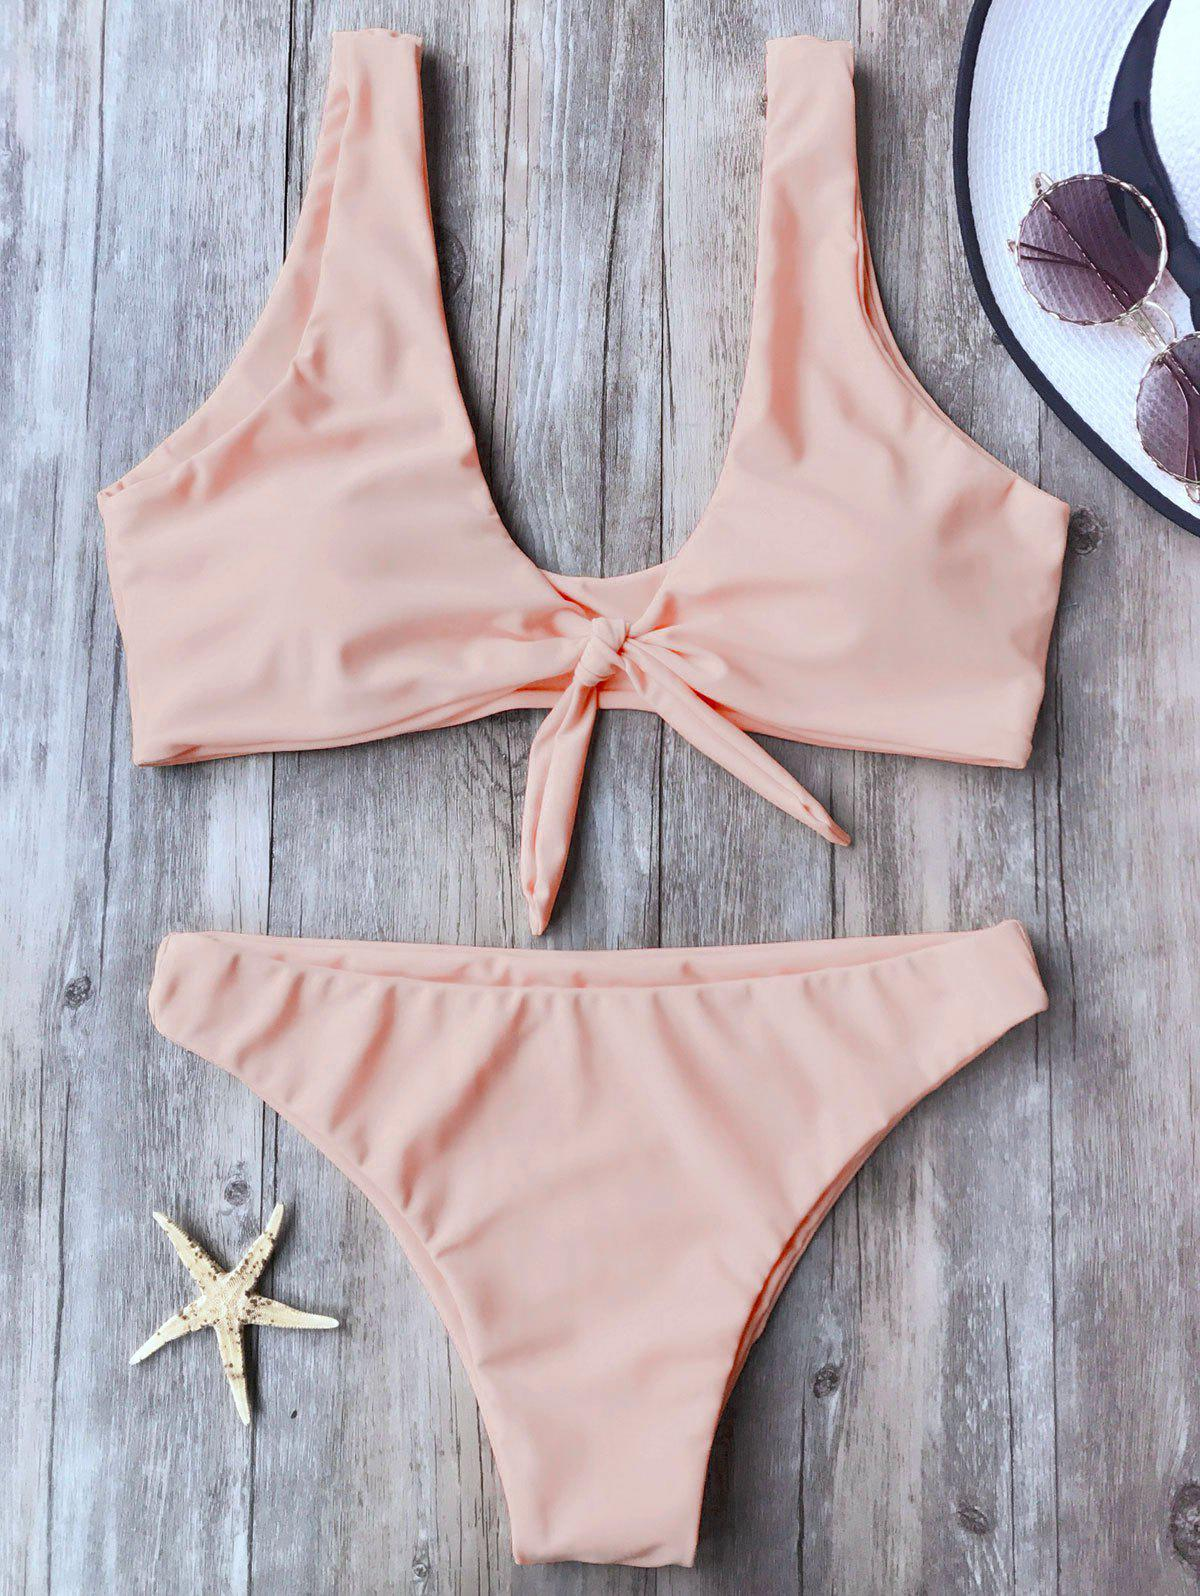 Knotted Scoop Neck Bikini SetWOMEN<br><br>Size: L; Color: PINK; Swimwear Type: Bikini; Gender: For Women; Material: Nylon,Polyester,Spandex; Bra Style: Padded; Support Type: Wire Free; Neckline: Scoop Neck; Pattern Type: Solid; Waist: Low Waisted; Elasticity: Elastic; Weight: 0.2000kg; Package Contents: 1 x Top  1 x Bottoms;